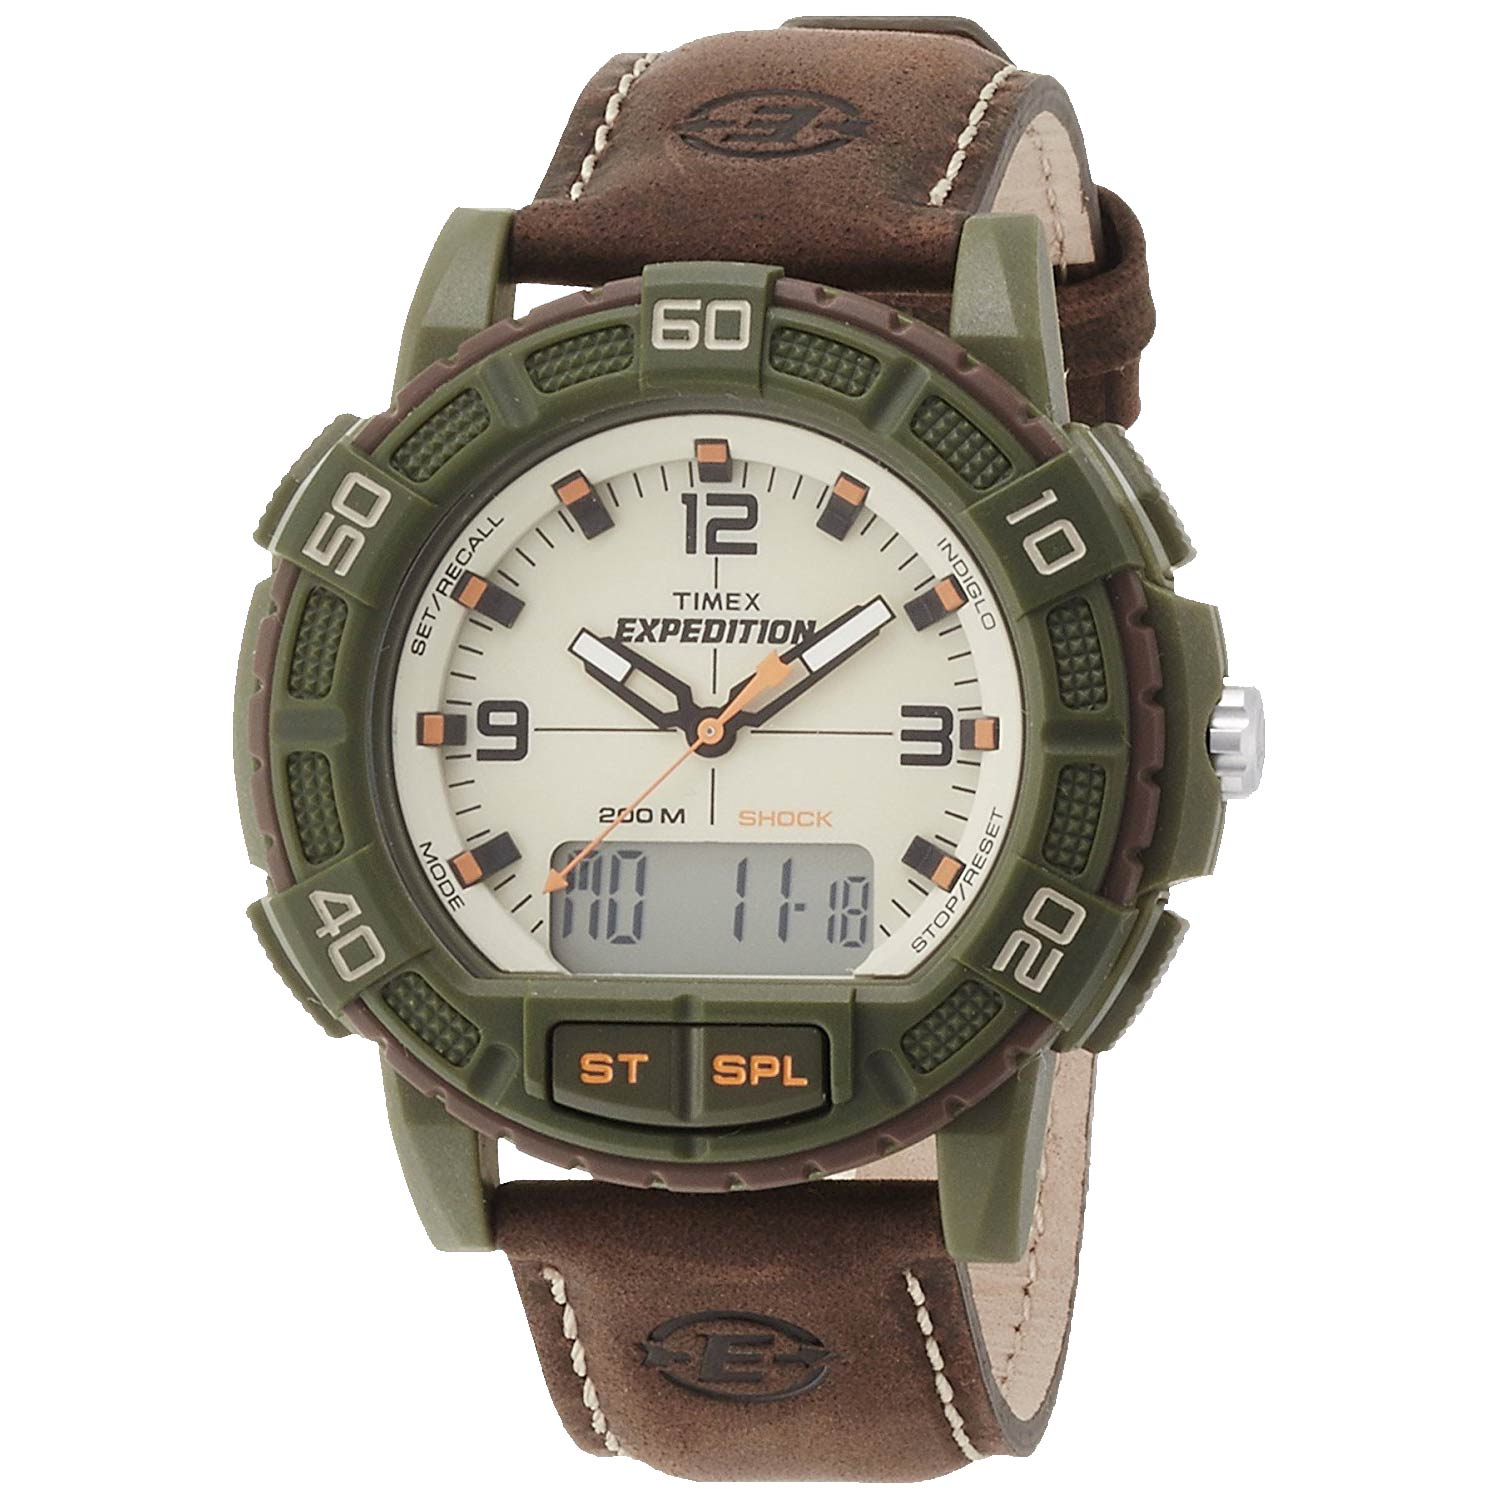 Timex-Expedition-T49969-Double-Shock-Outdoor-Uhr-mit-Analog-Digital-Anzeige